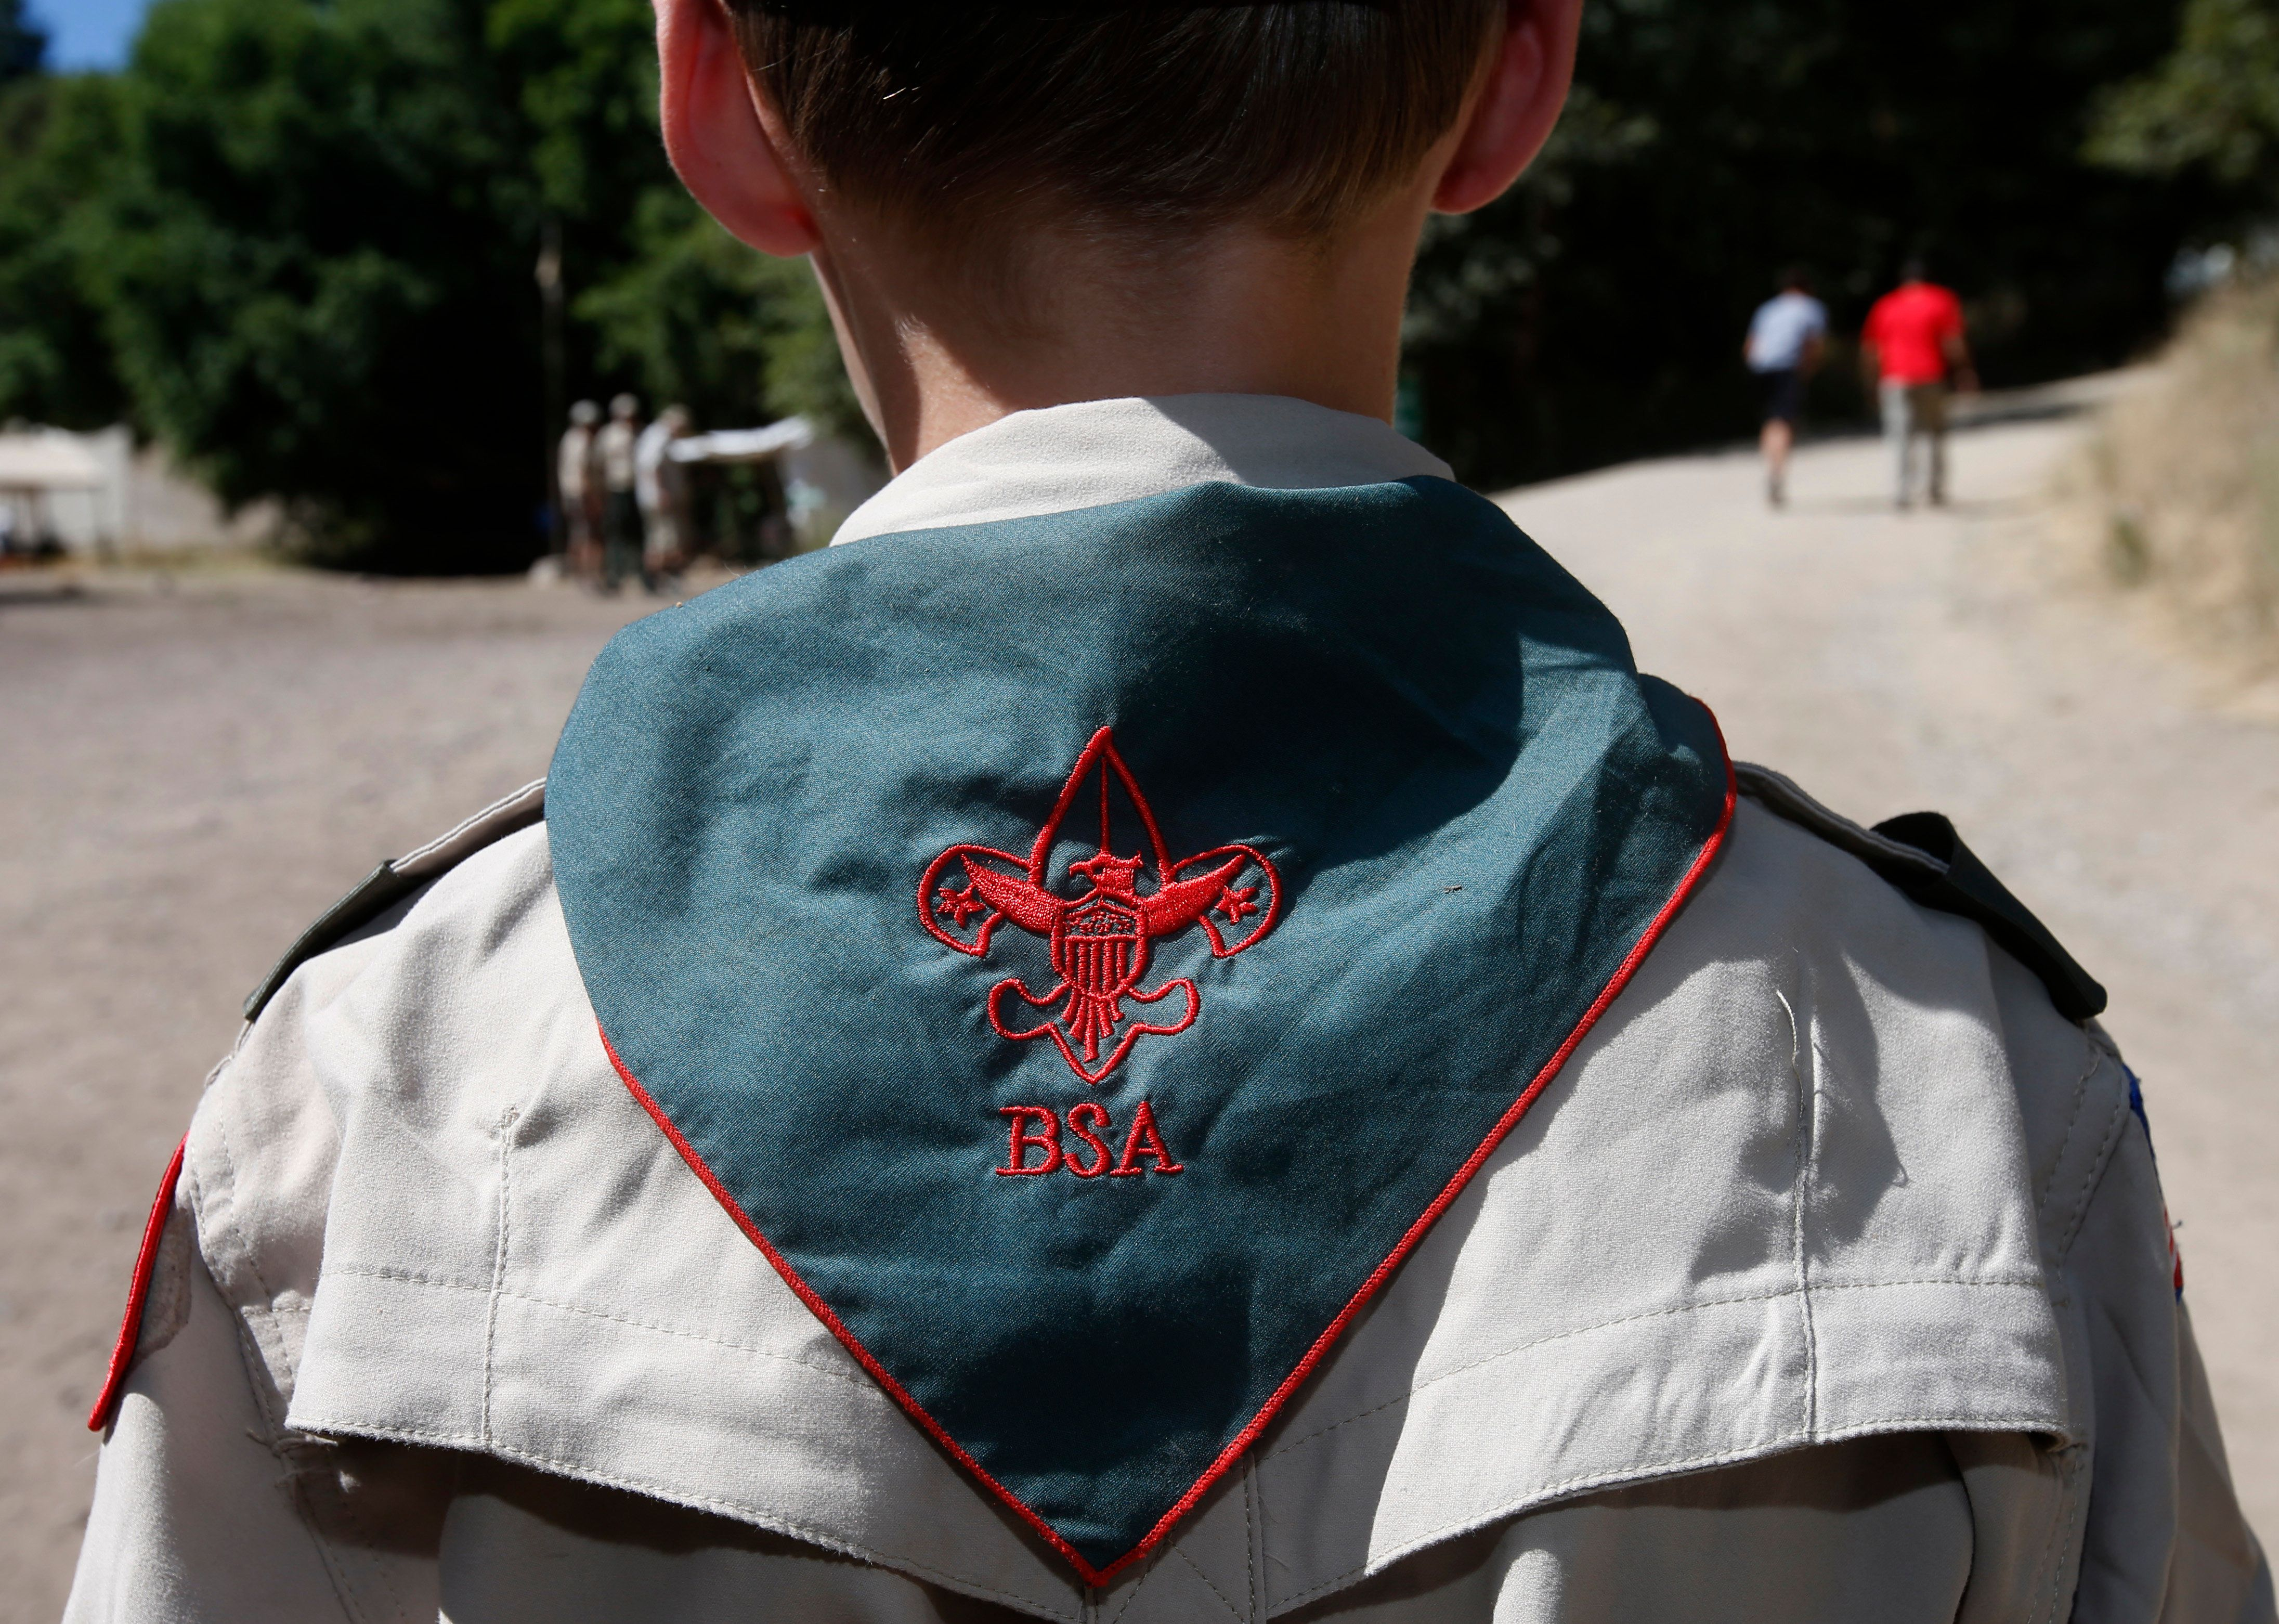 PAYSON, UT - JULY 31: A Boy Scout listens to instruction at camp Maple Dell on July 31, 2015 outside Payson, Utah. The Mormon Church is considering pulling out of its 102 year old relationship with the Boy Scouts after the Boy Scouts changed it's policy on allowing gay leaders in the organization.  Over 99% of the Boy Scout troops in Utah are sponsored by the Mormon Church. (Photo by George Frey/Getty Images)